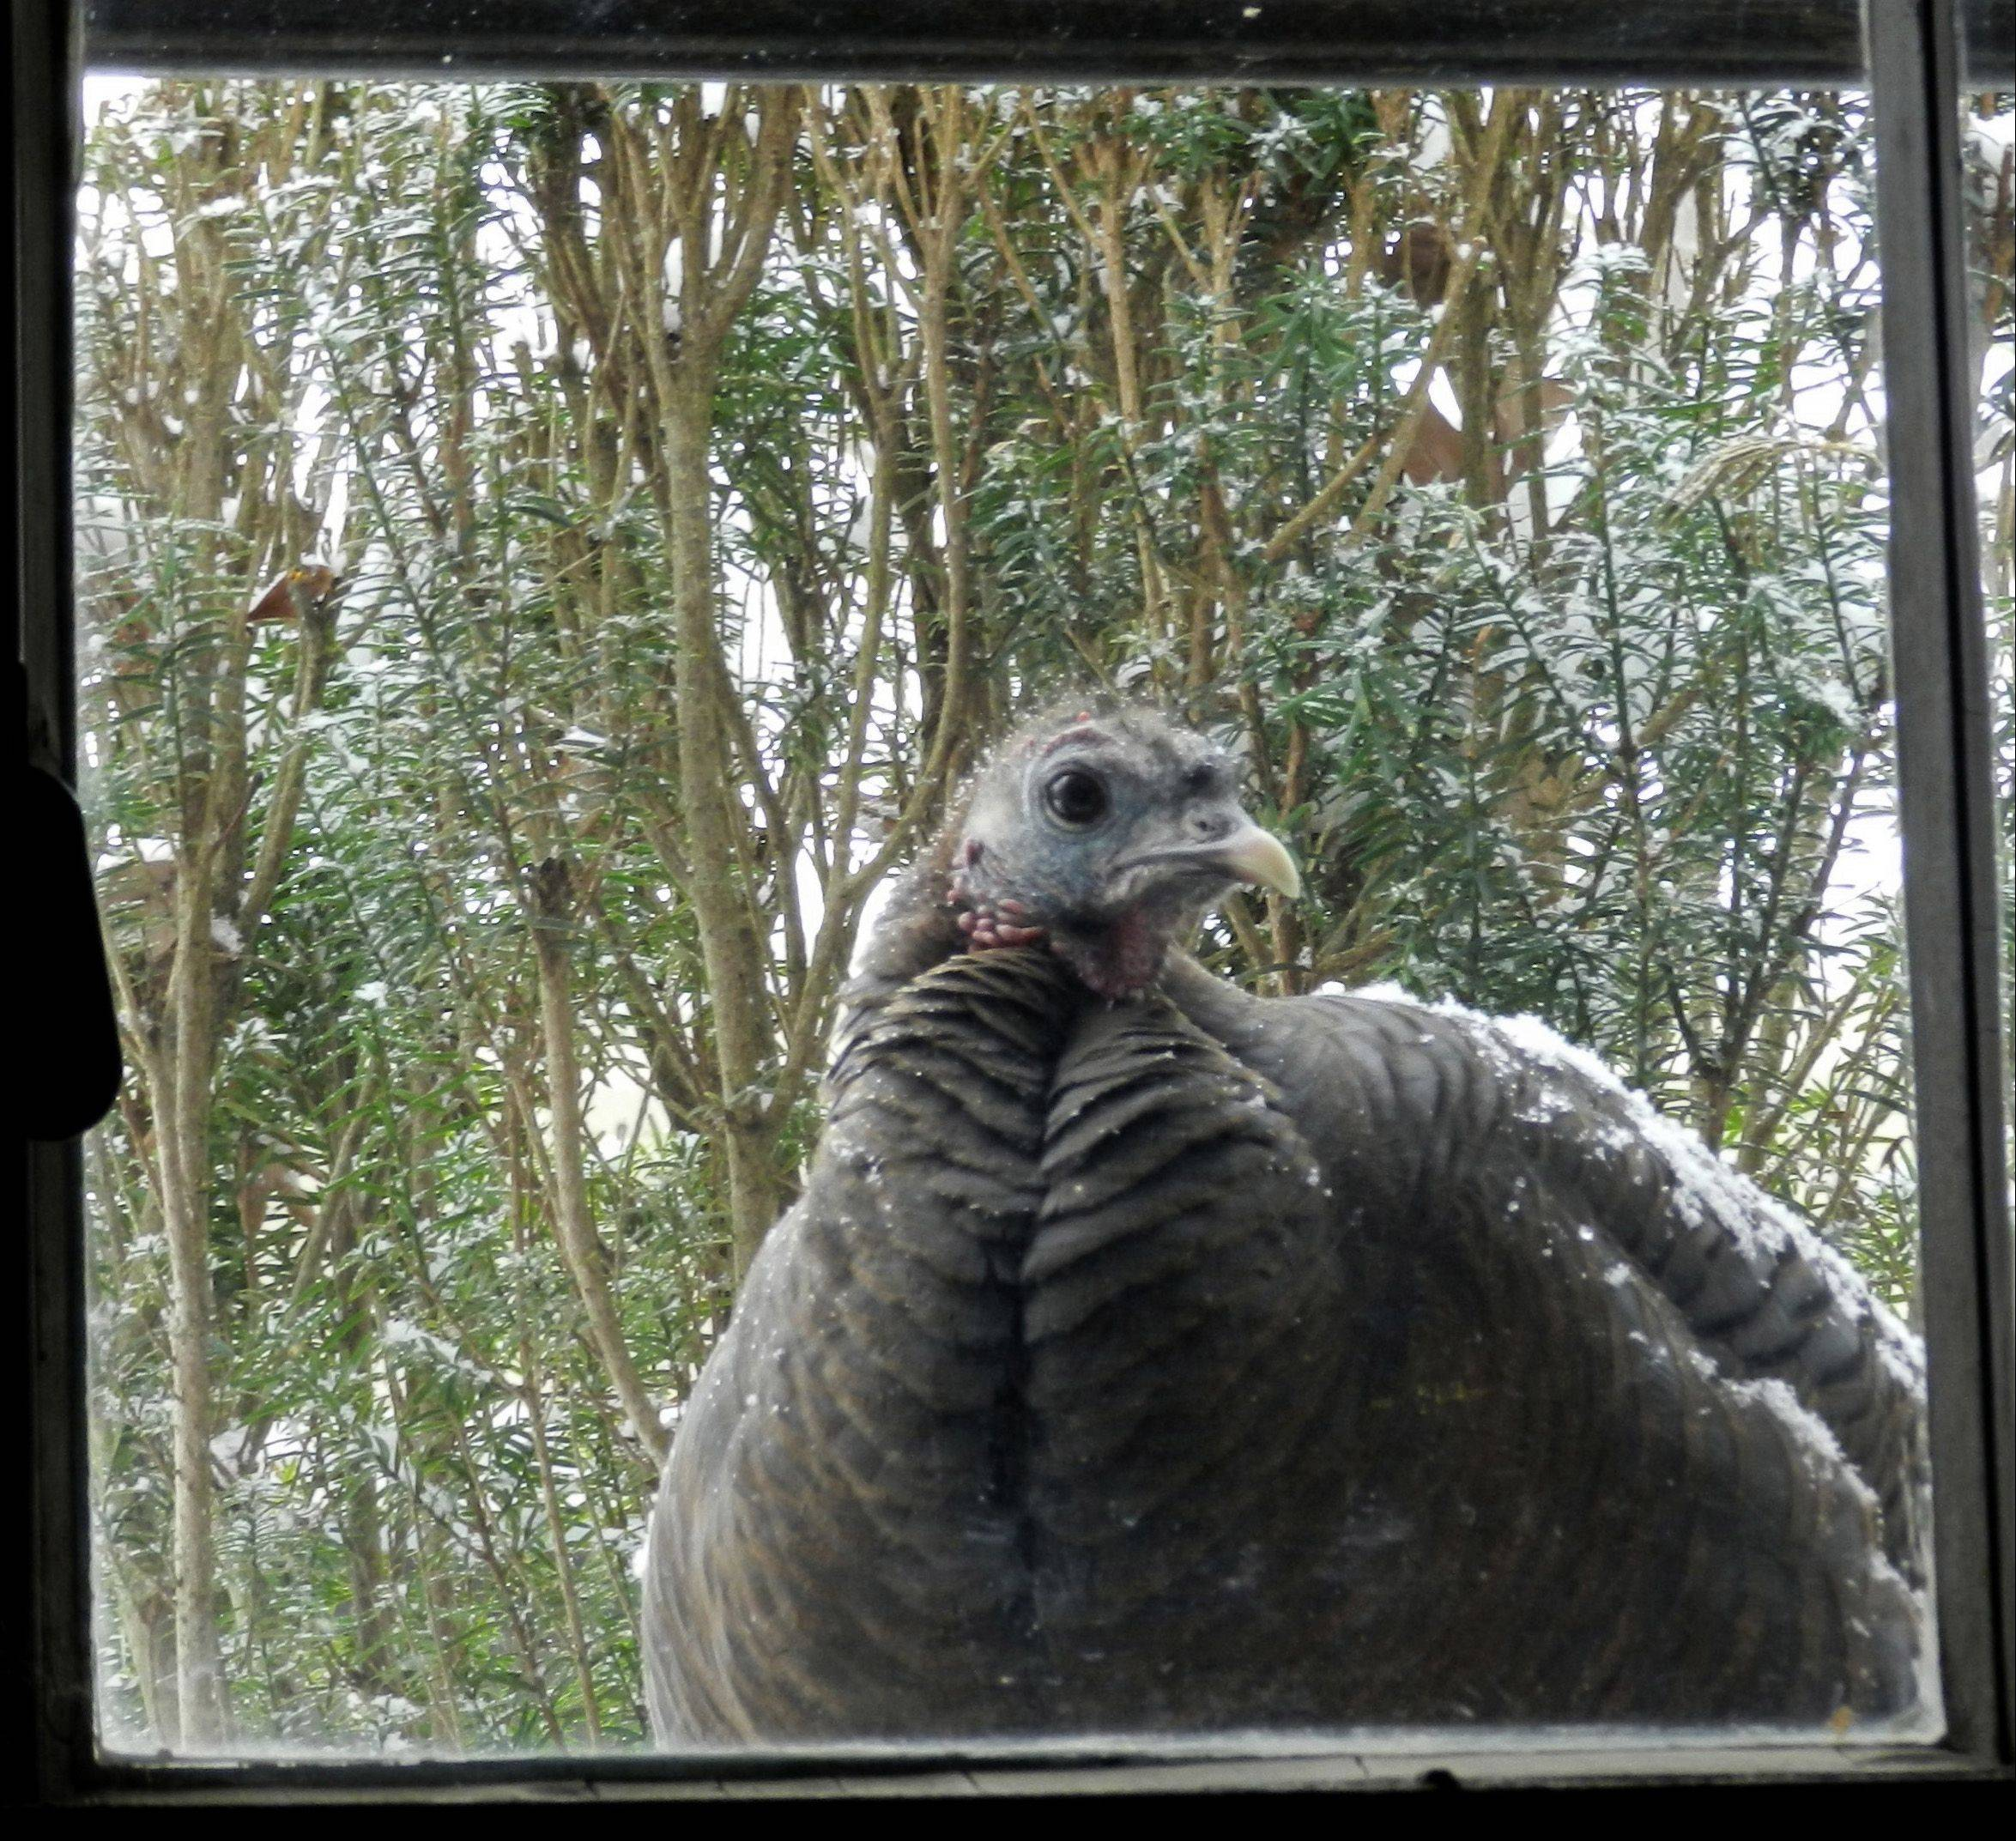 The setting is a wild turkey hen who discovered that heat comes from our basement window in cold weather, while the bush right behind it offers protection from the wind. This bird also seems quite interested in who's on the other side of the window.